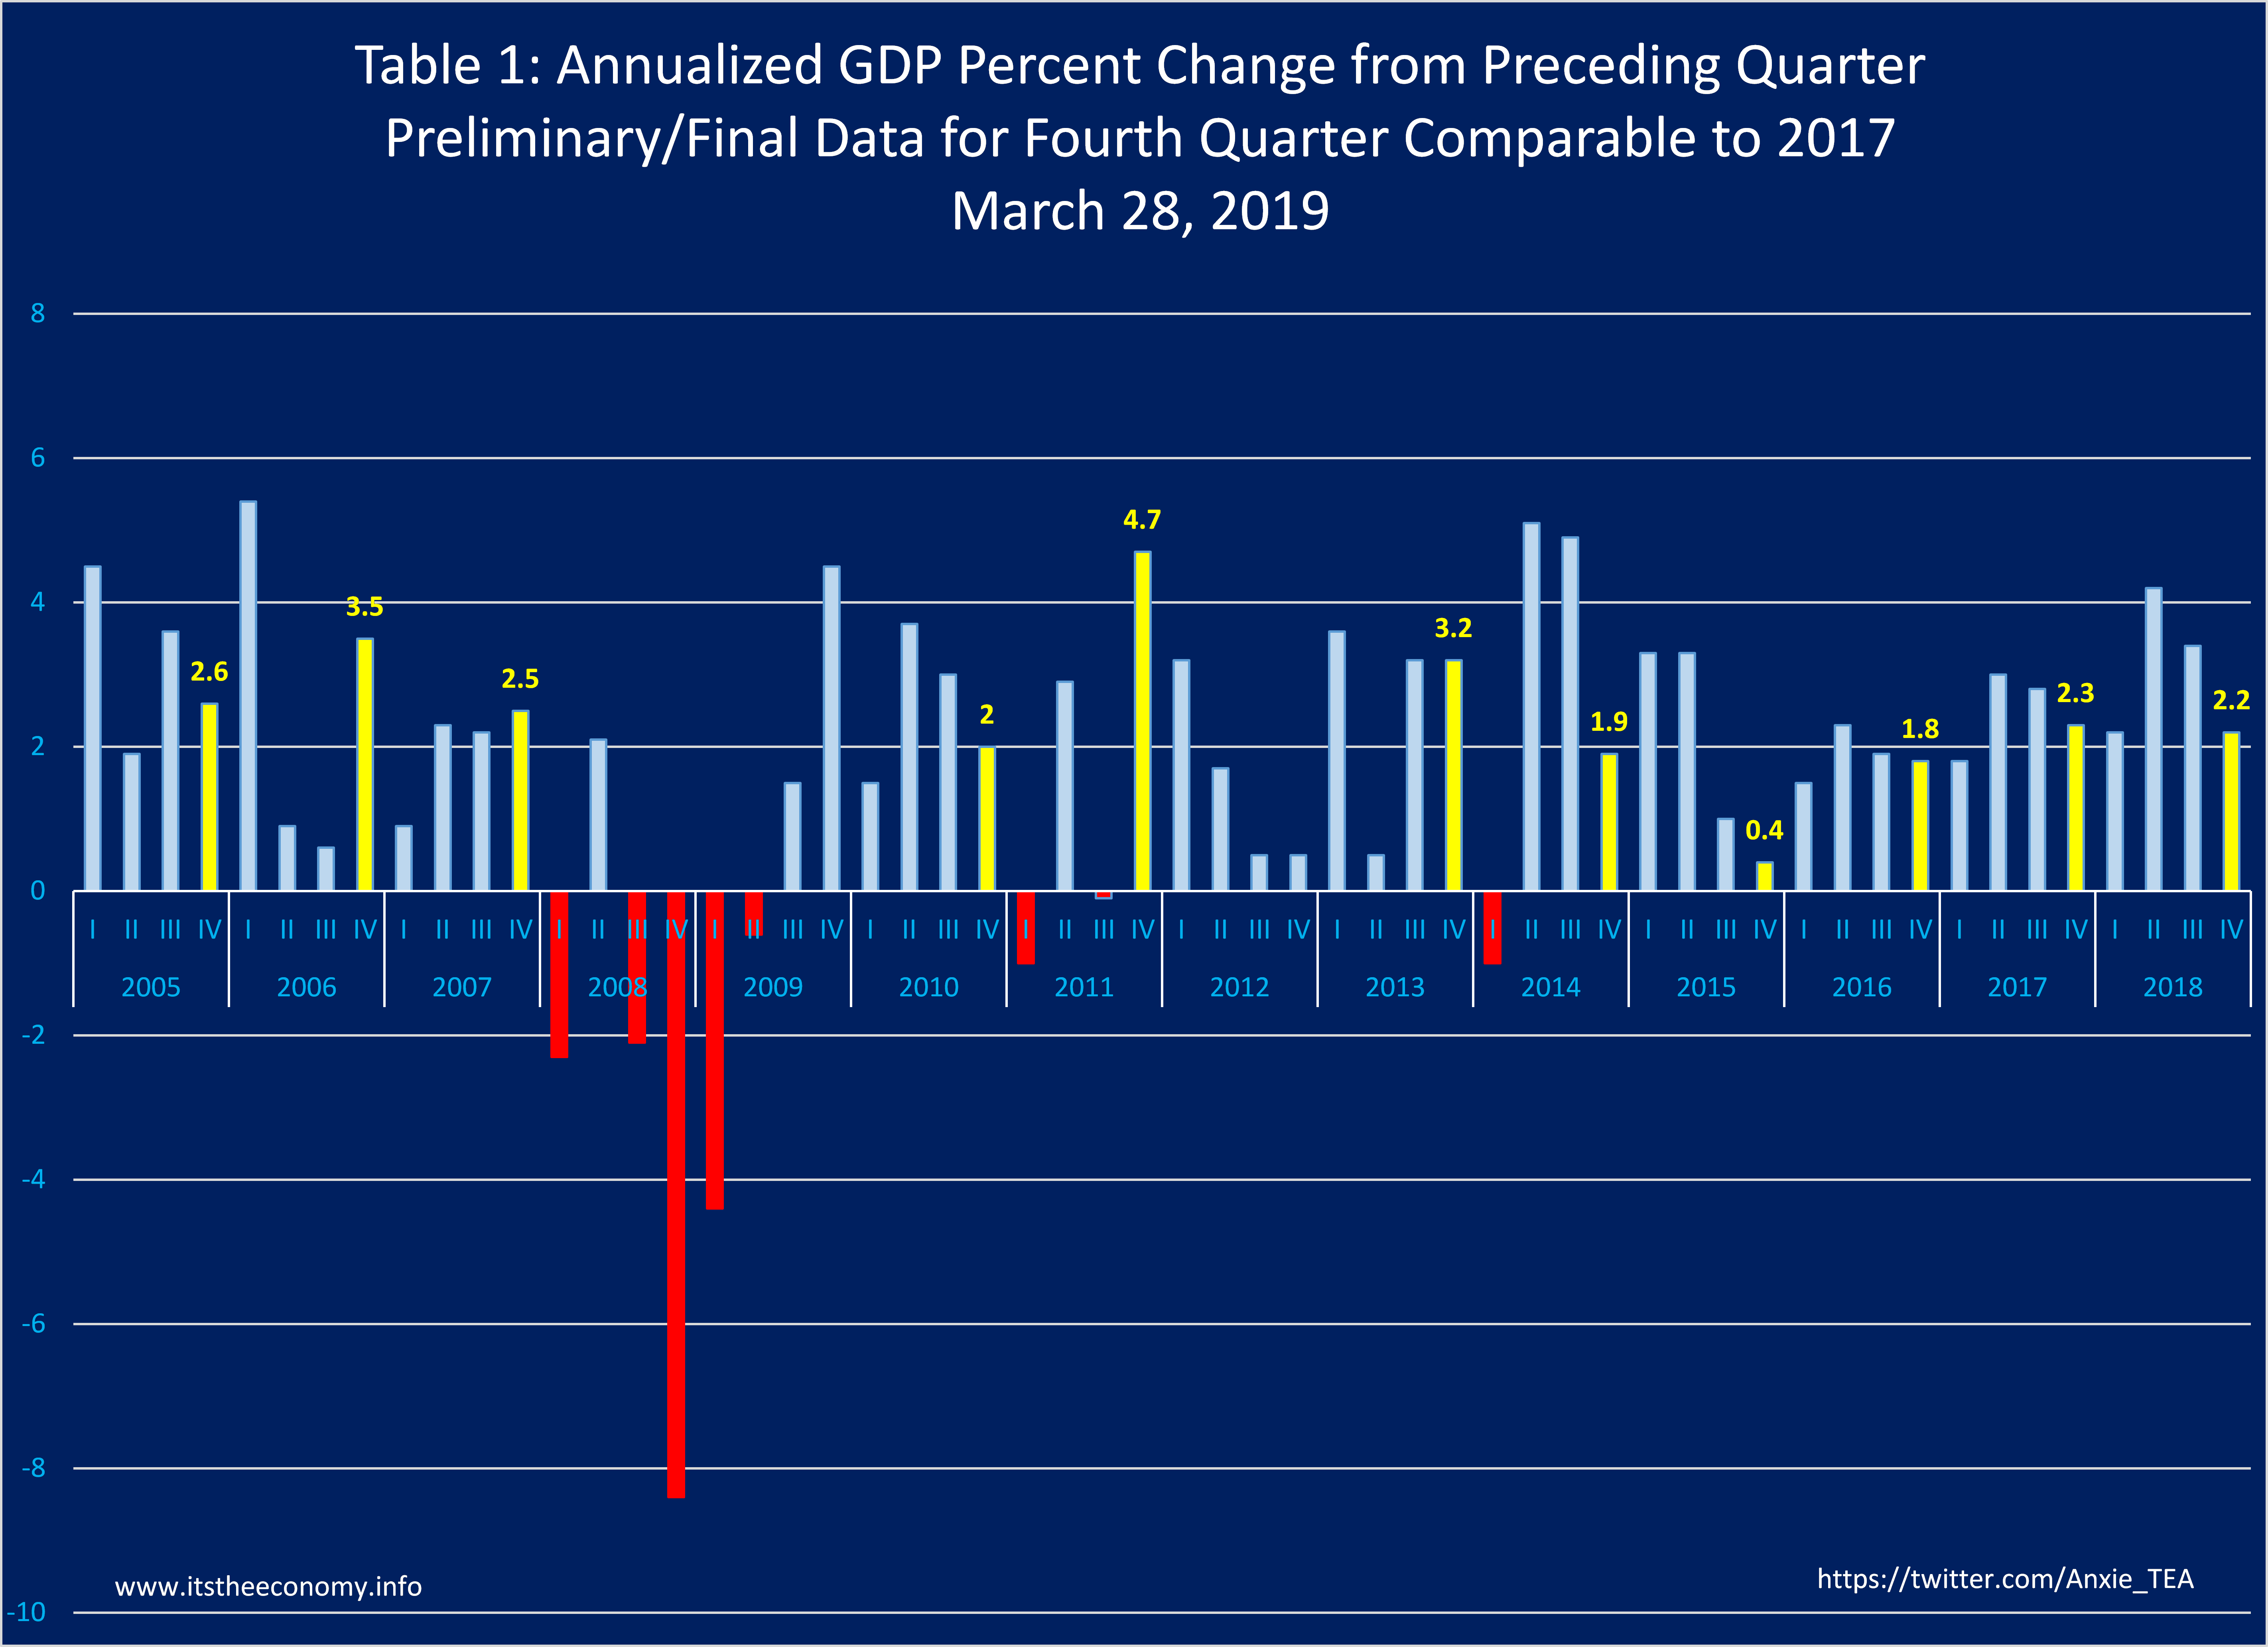 Fourth Quarter GDP, which had been reported at 2.6%, was revised to 2.2%, comparable to the fourth quarter 2017 level.